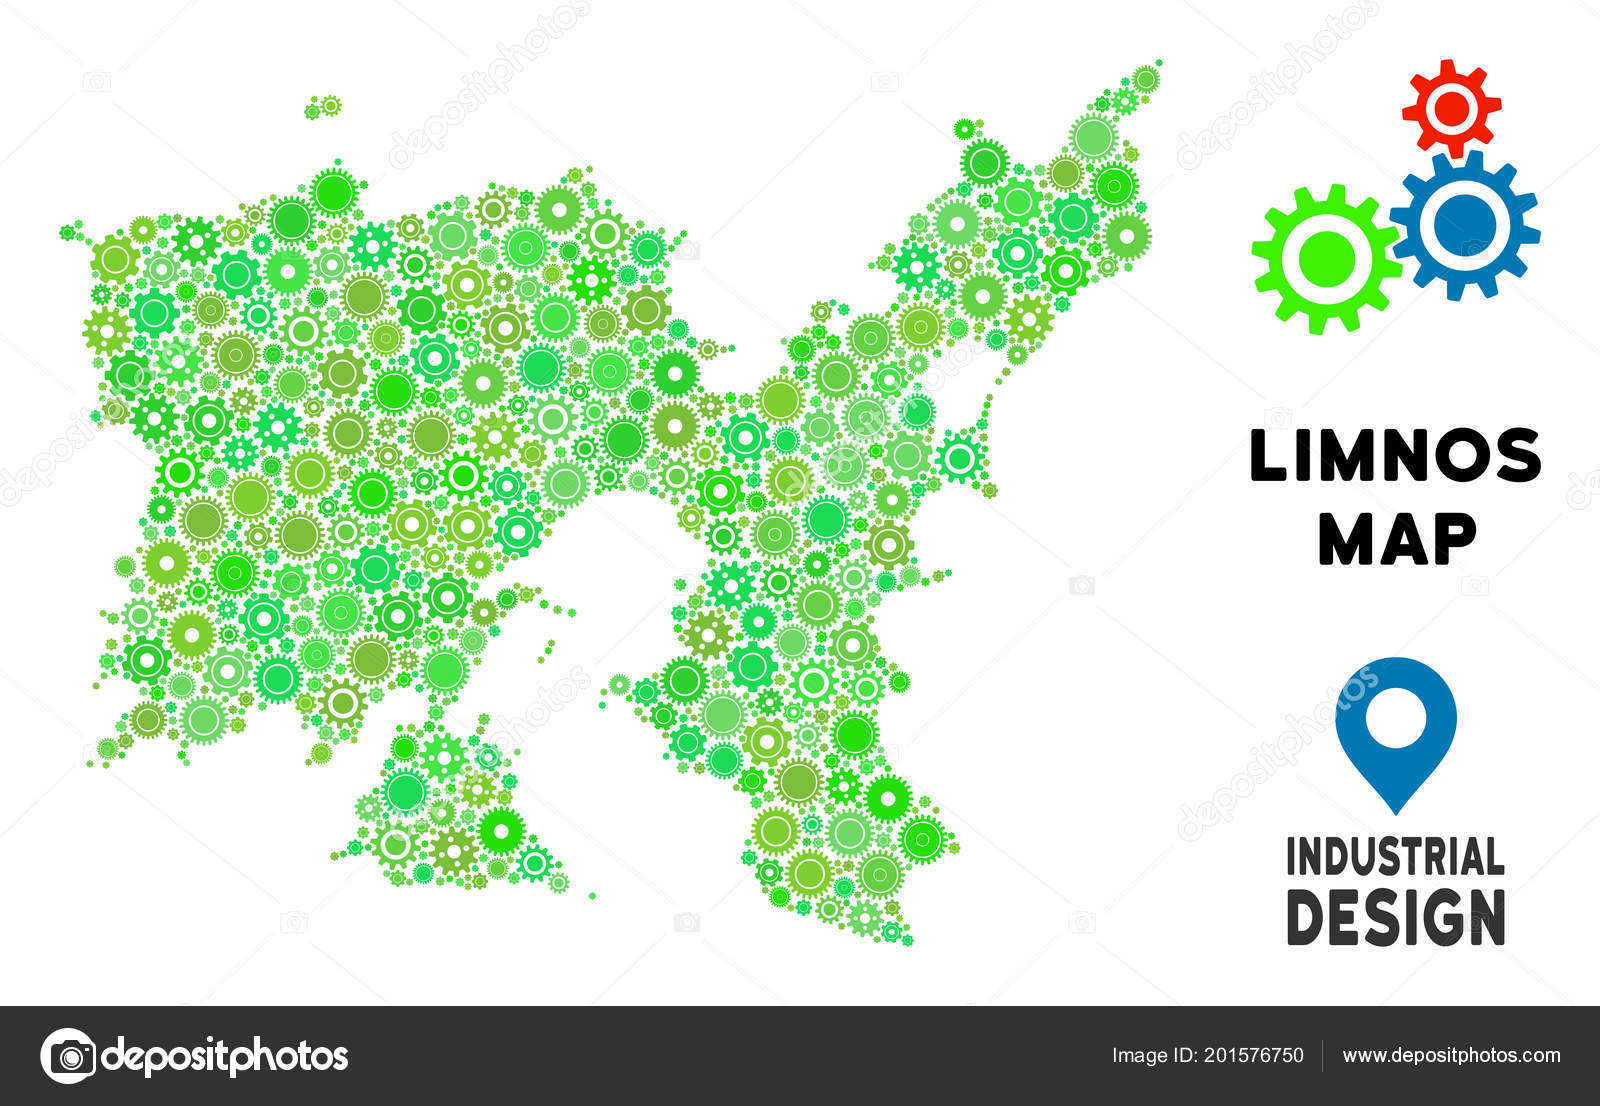 Gears Limnos Greek Island Map Mosaic Stock Vector C Ahasoft